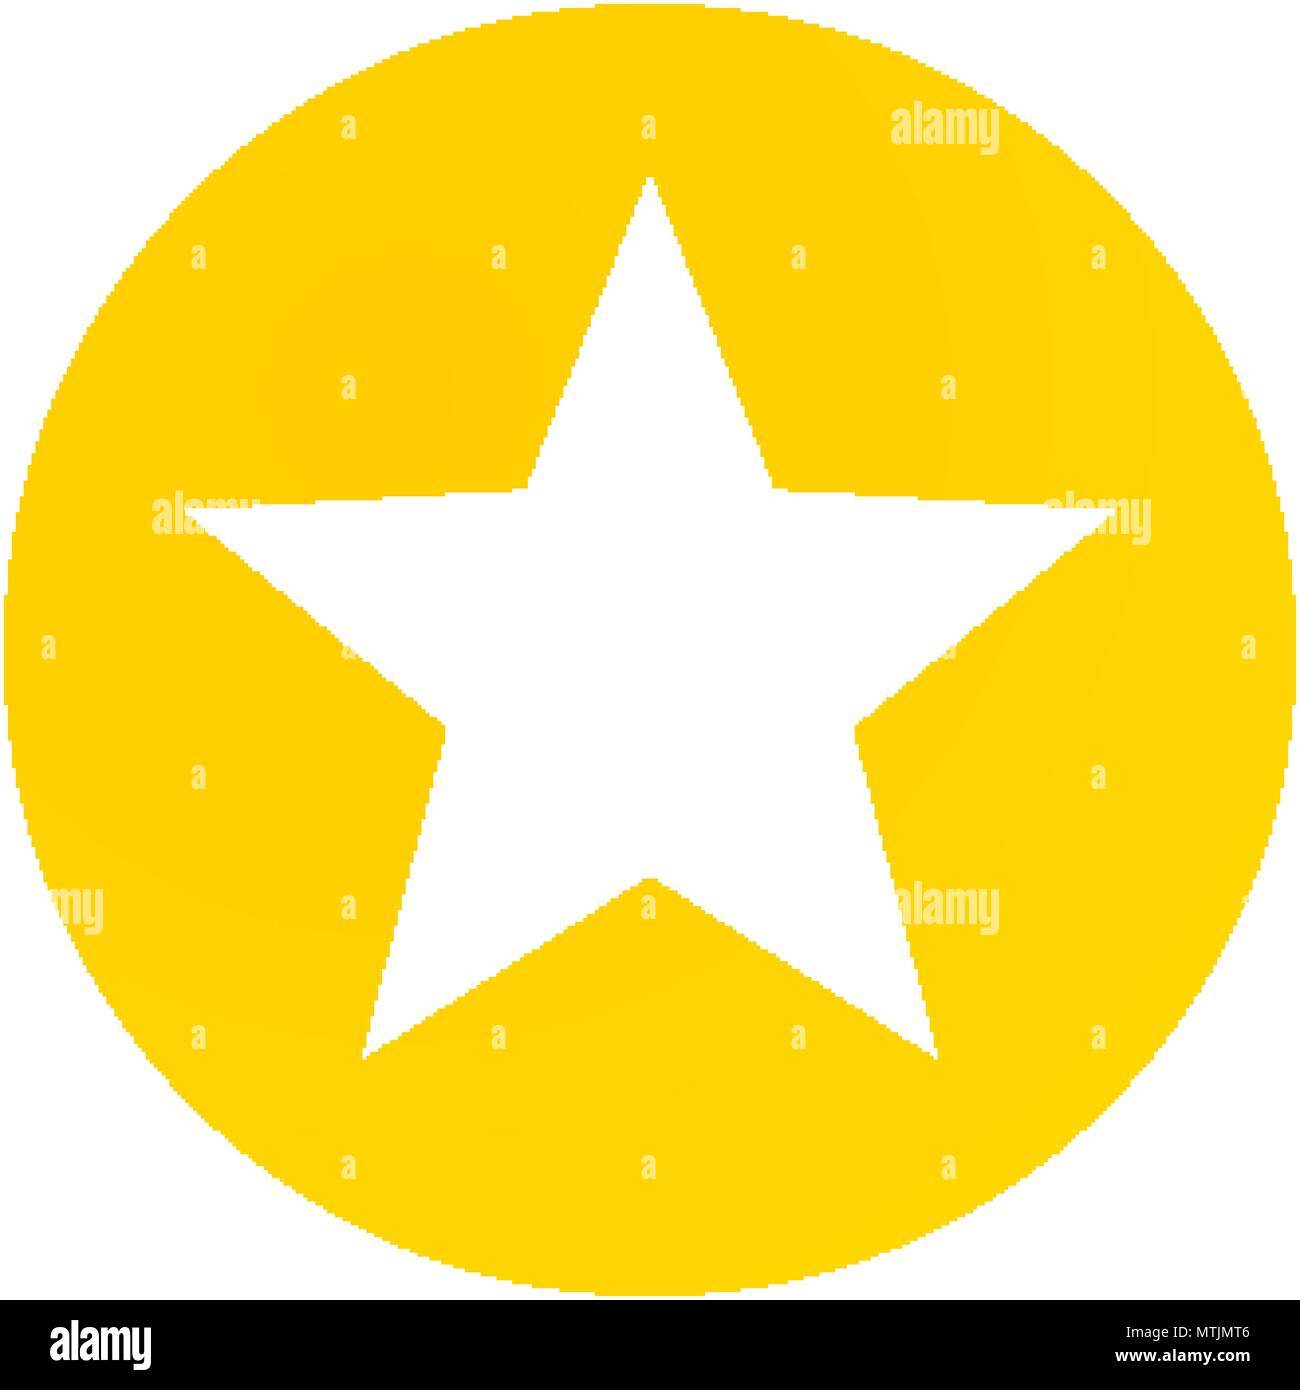 Isolated Star Inside Circle Design Stock Vector Images Alamy